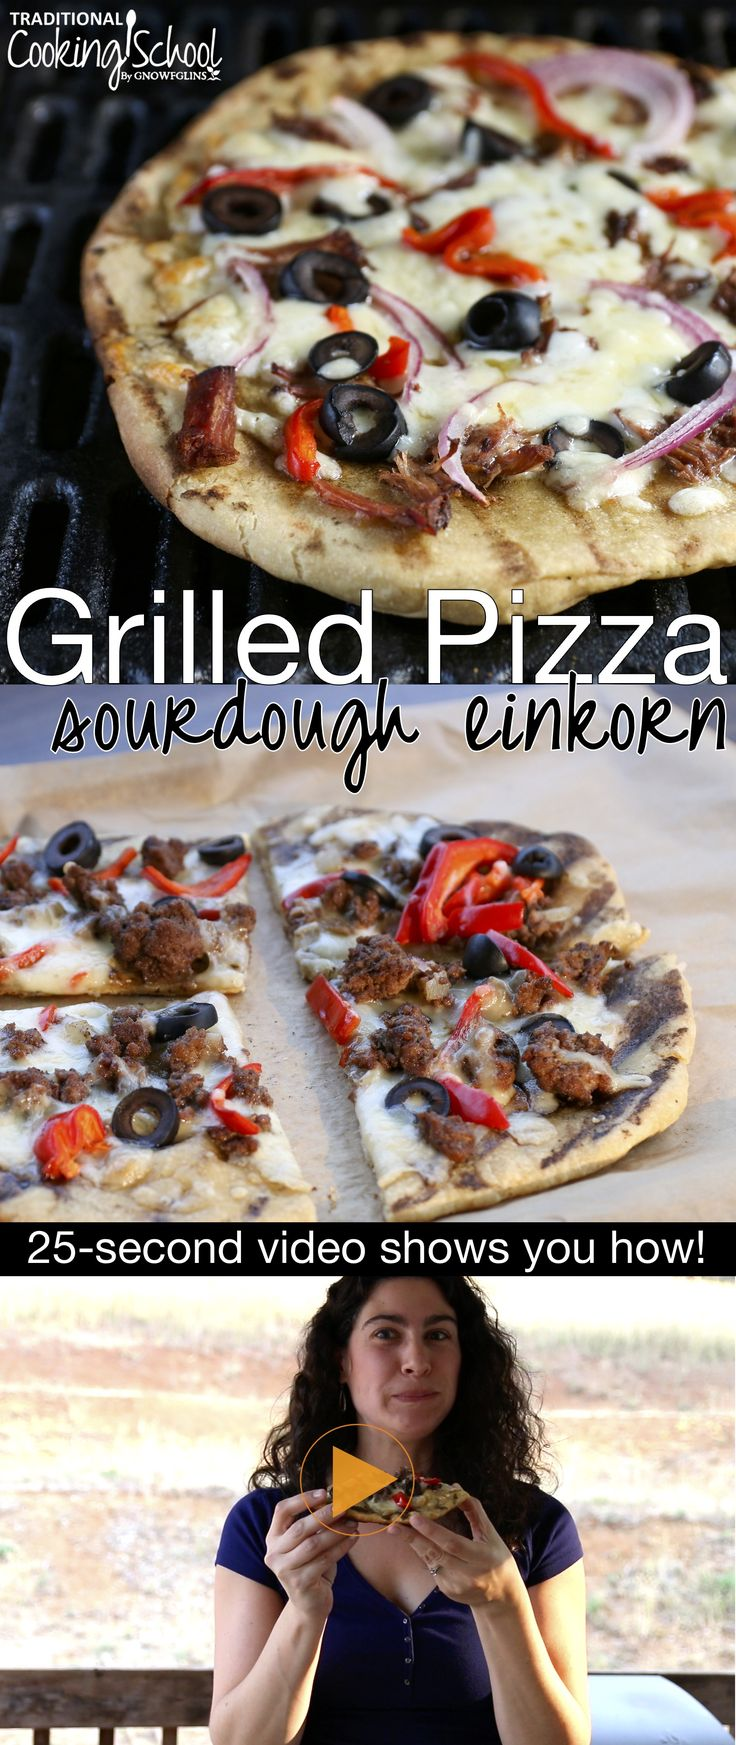 Hellooooo, pizzzzzaaaa! Grilled {sourdough einkorn} pizza! With a 25-second video. :) Go here to grab the recipes you'll need to make it yourself: http://traditionalcookingschool.com/grillpizza